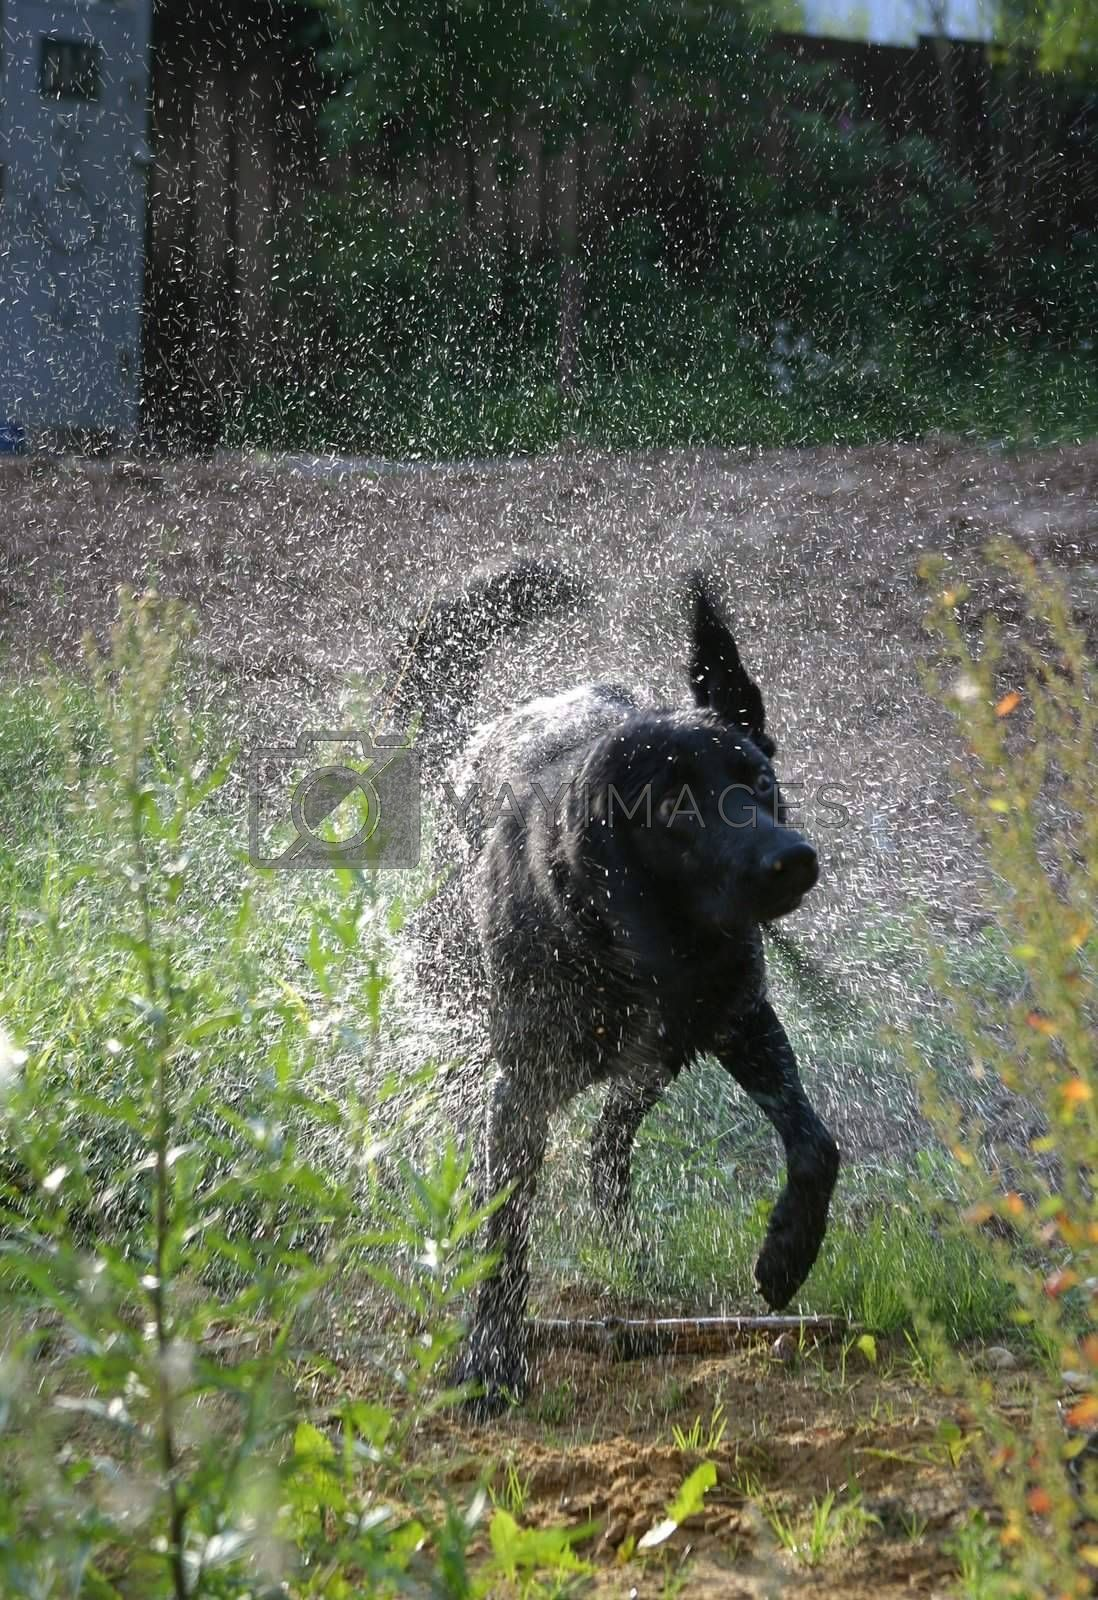 Wet dog in sparks. Illustration to magazine about animals